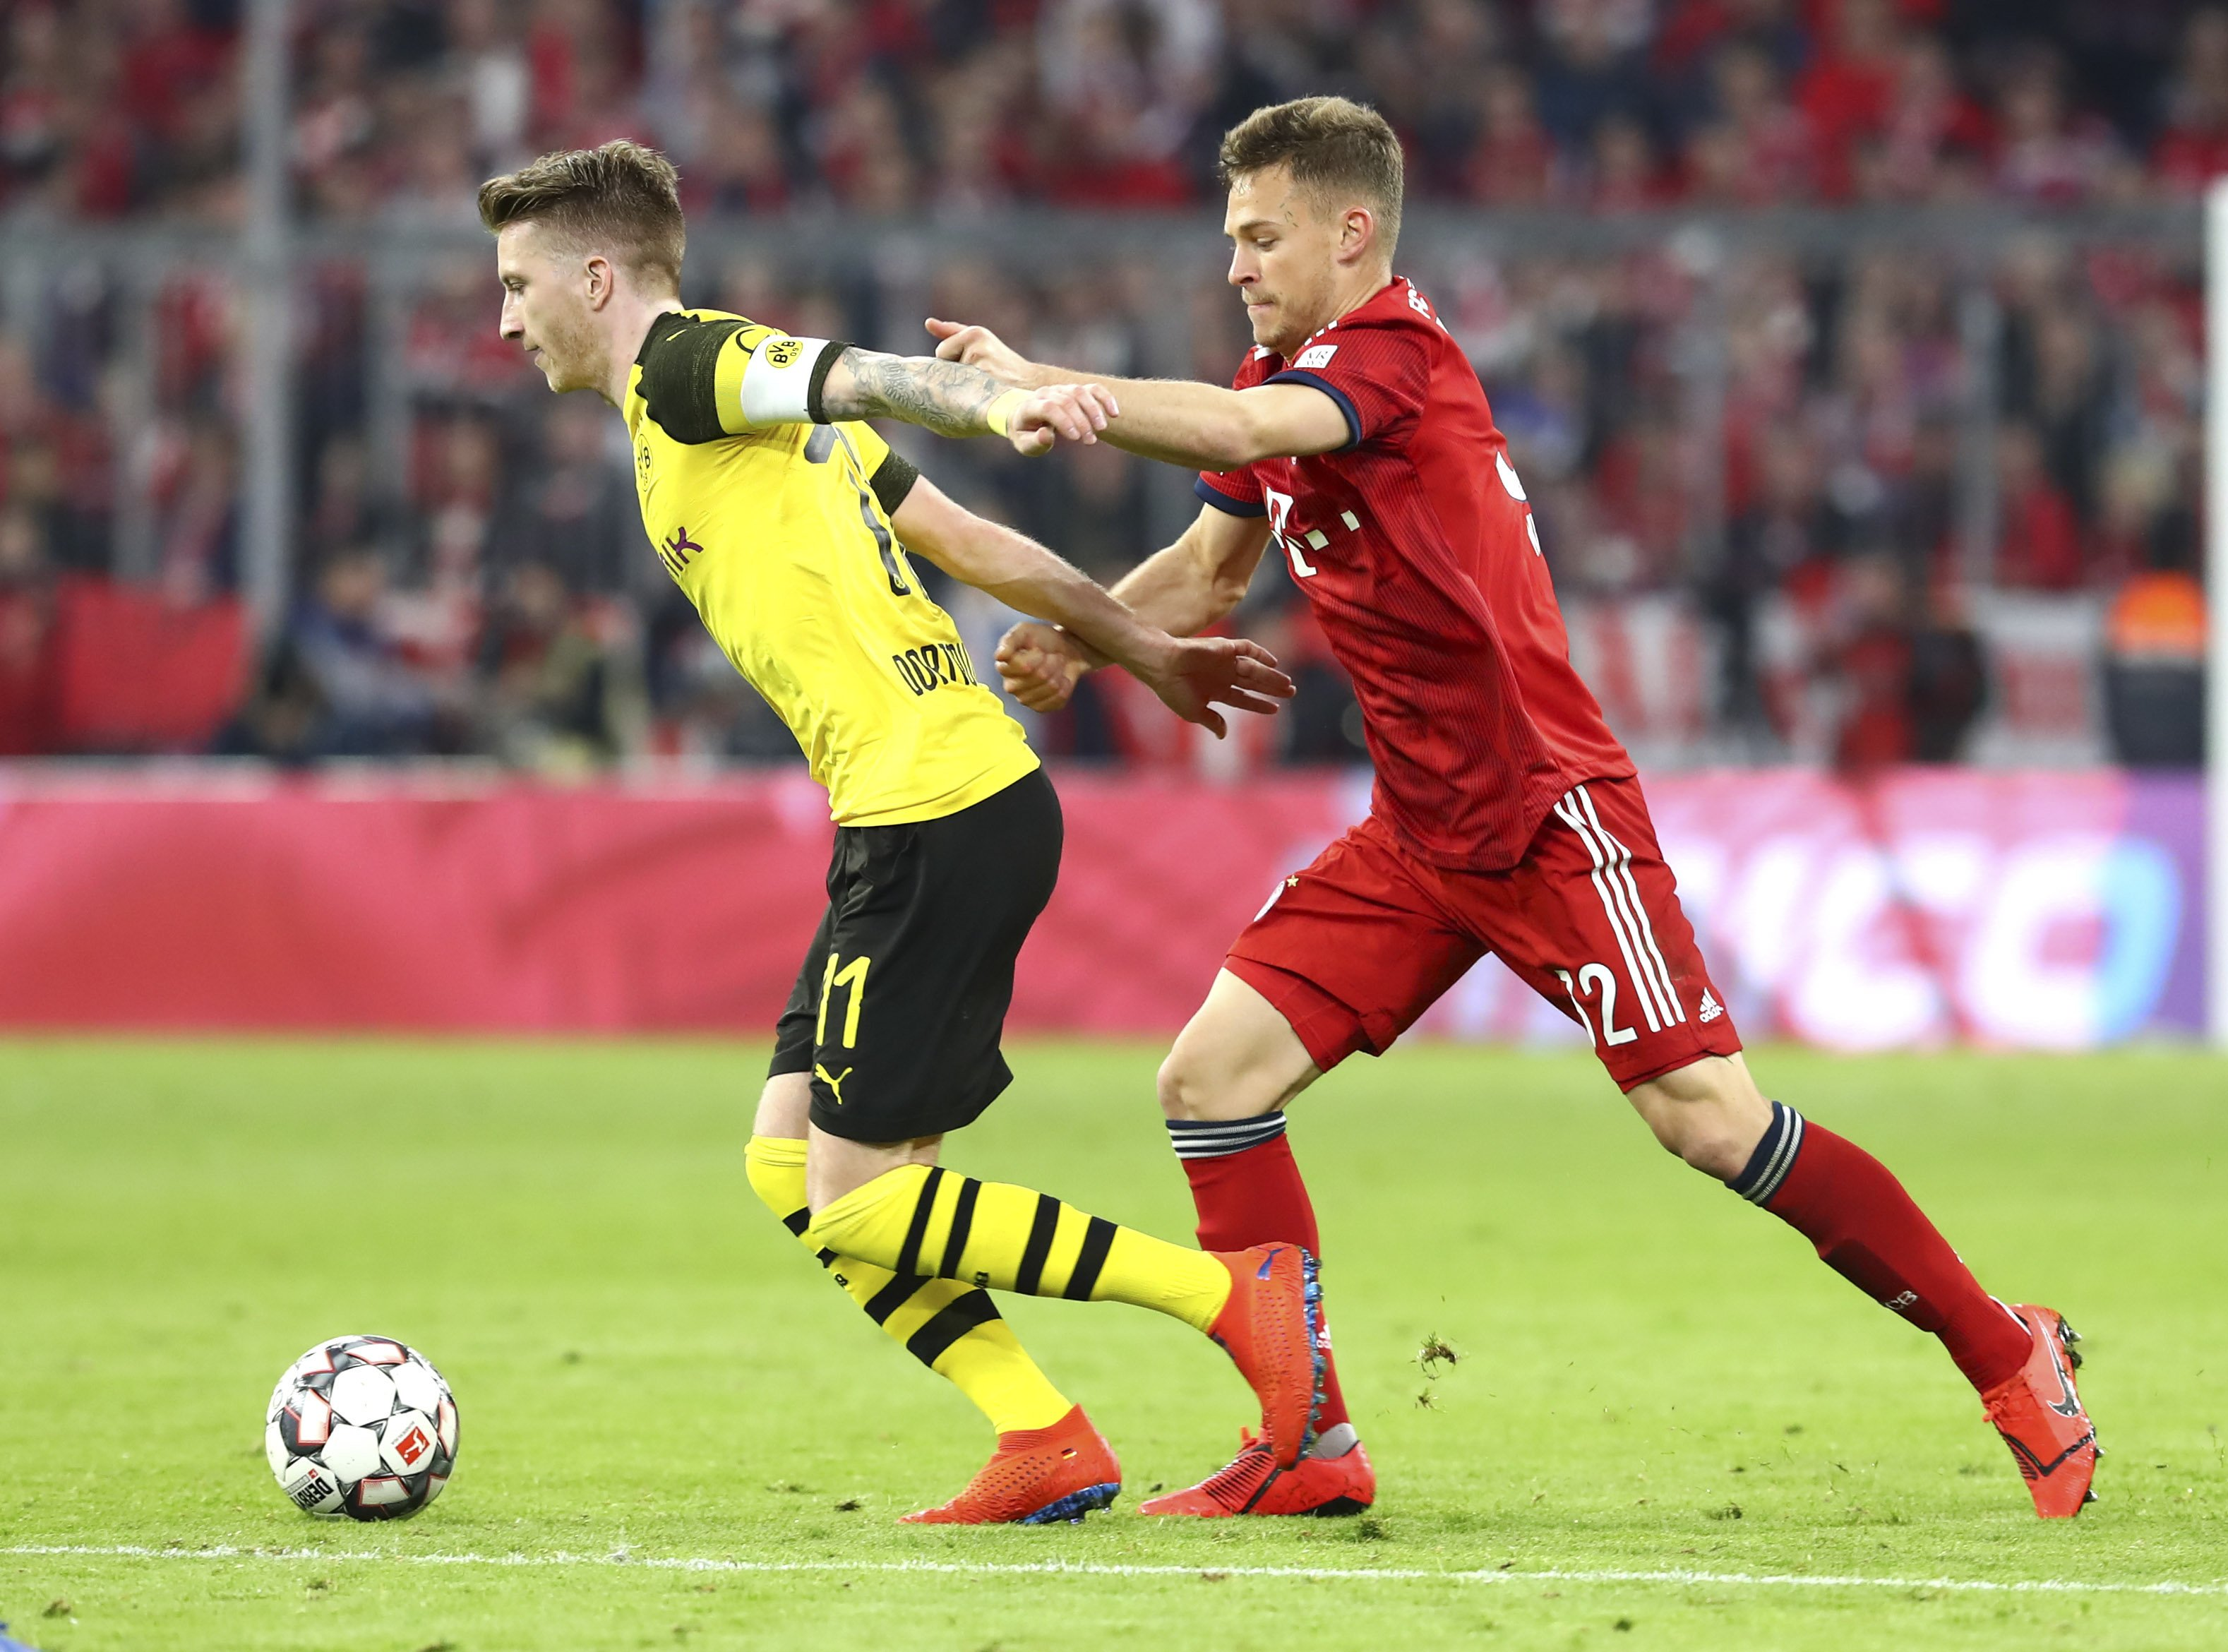 bayern dortmund munich betting tips bundesliga predictions